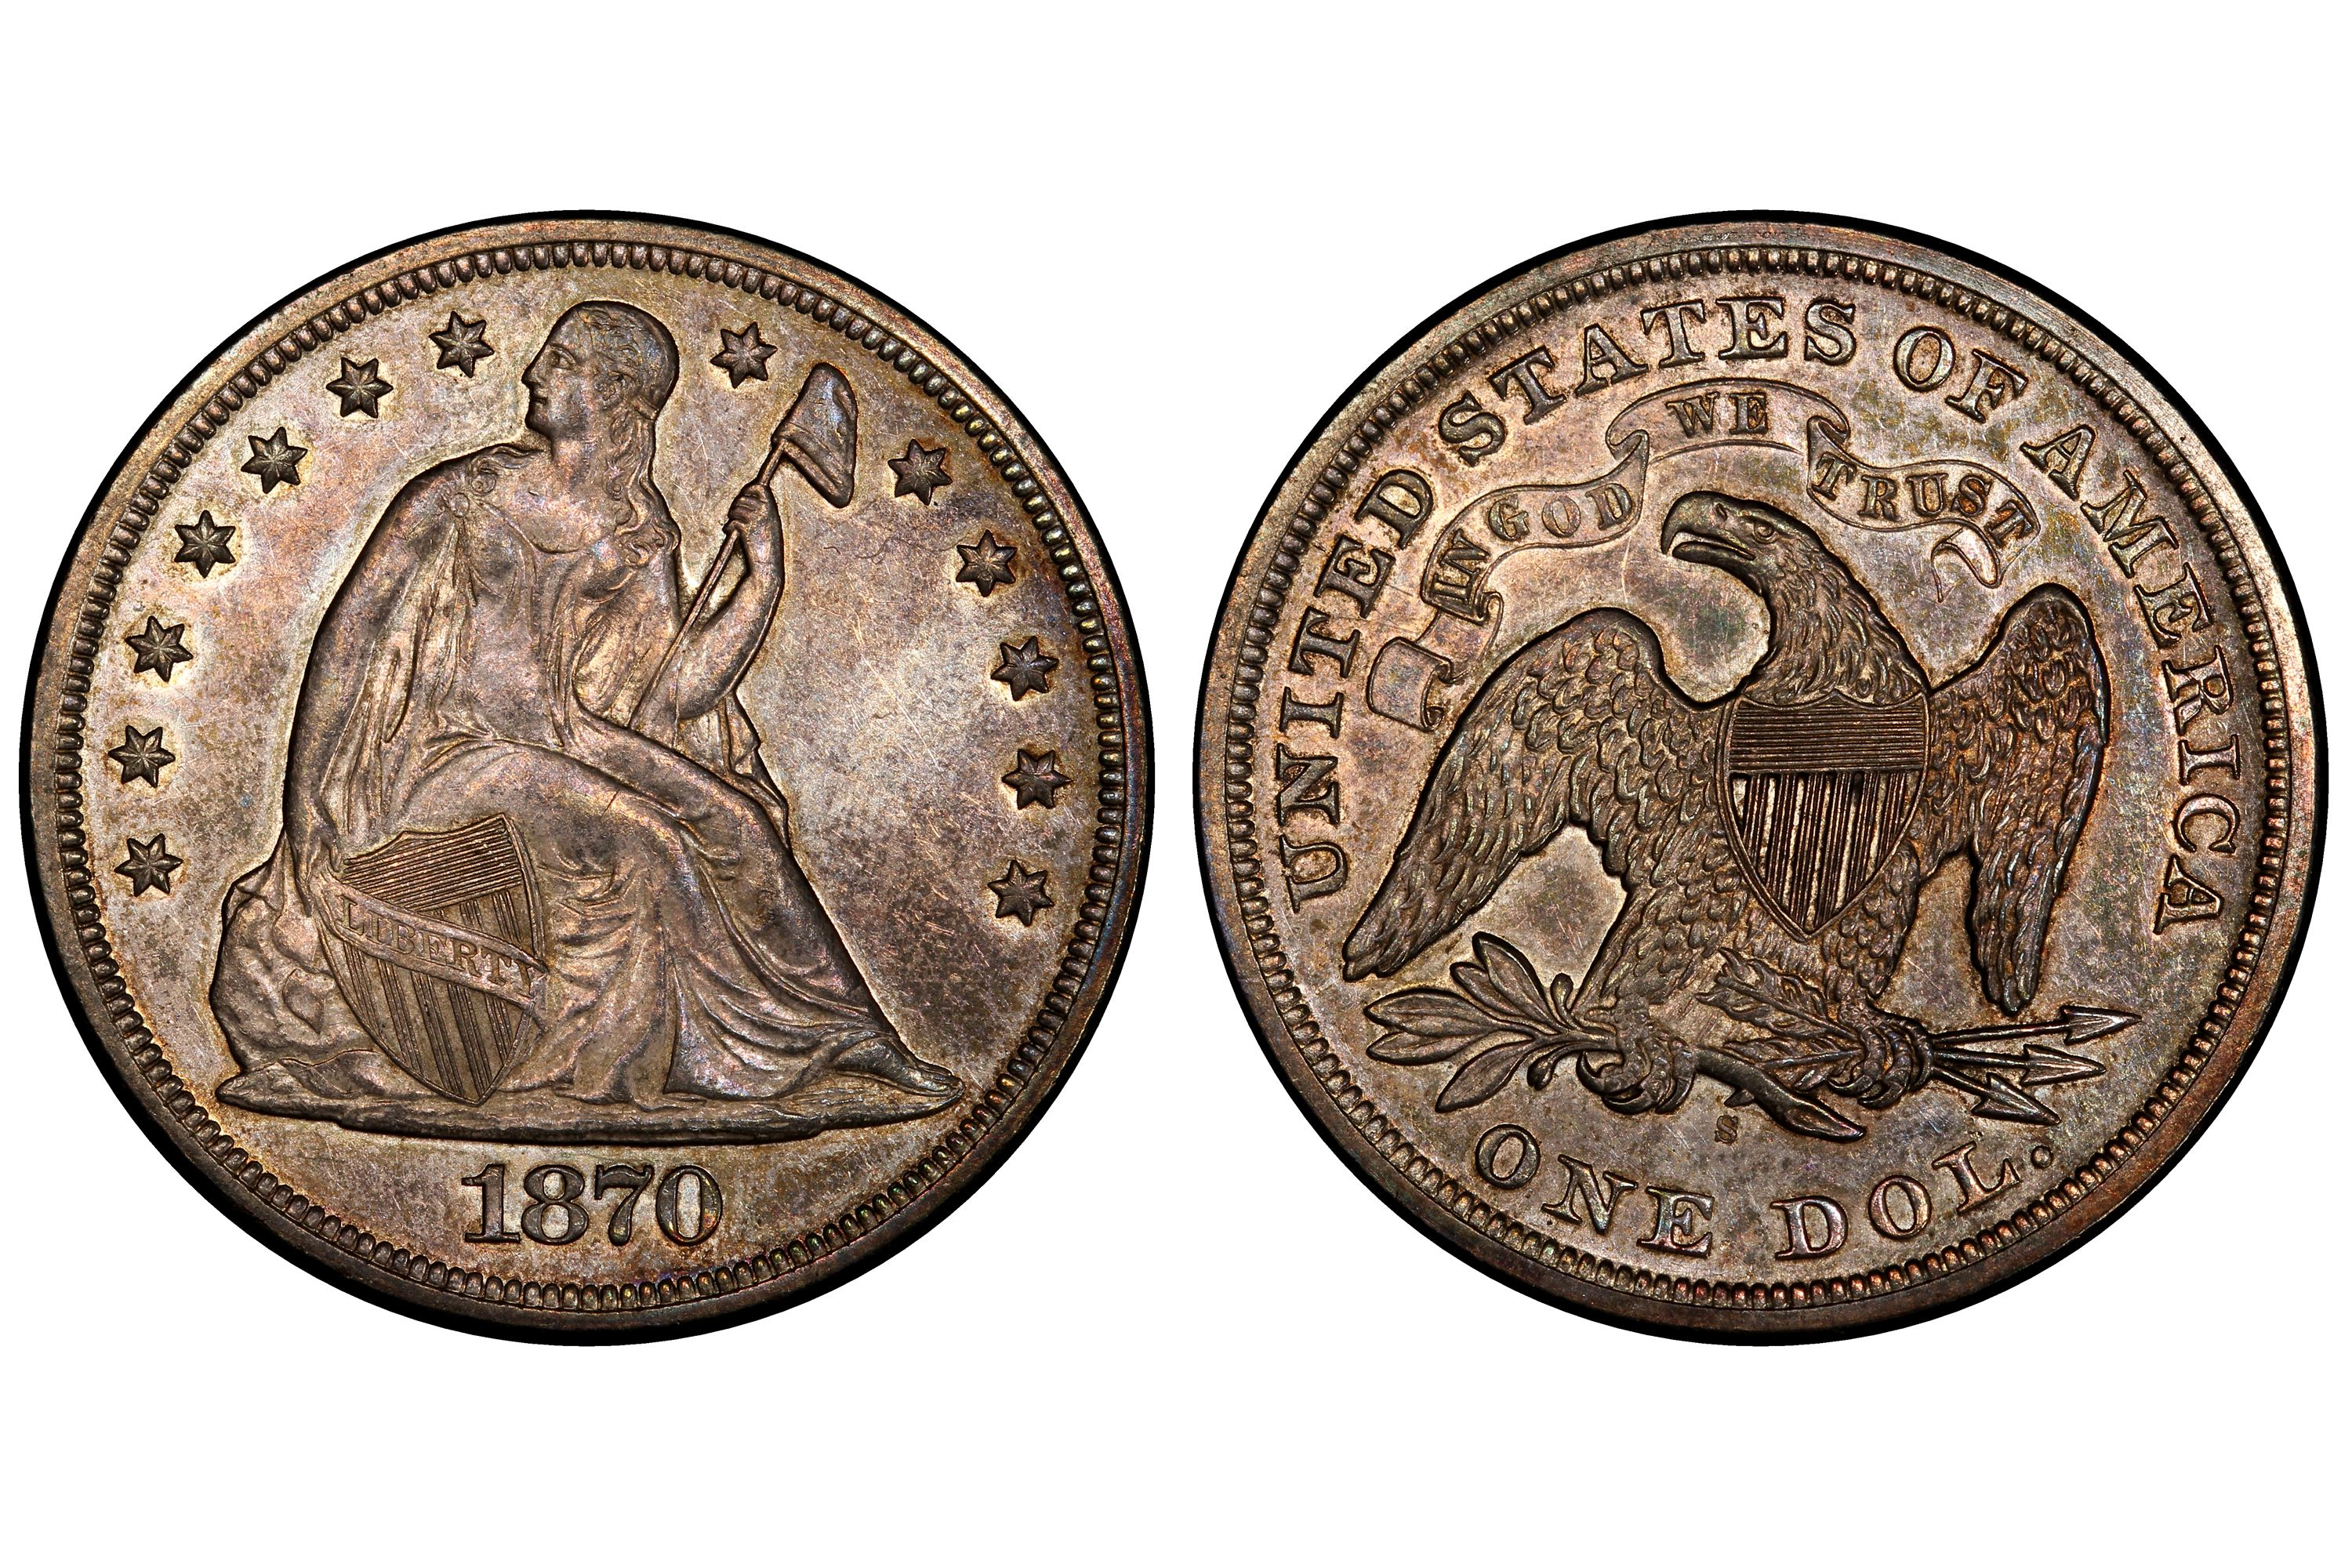 1870-S Liberty Seated Silver Dollar